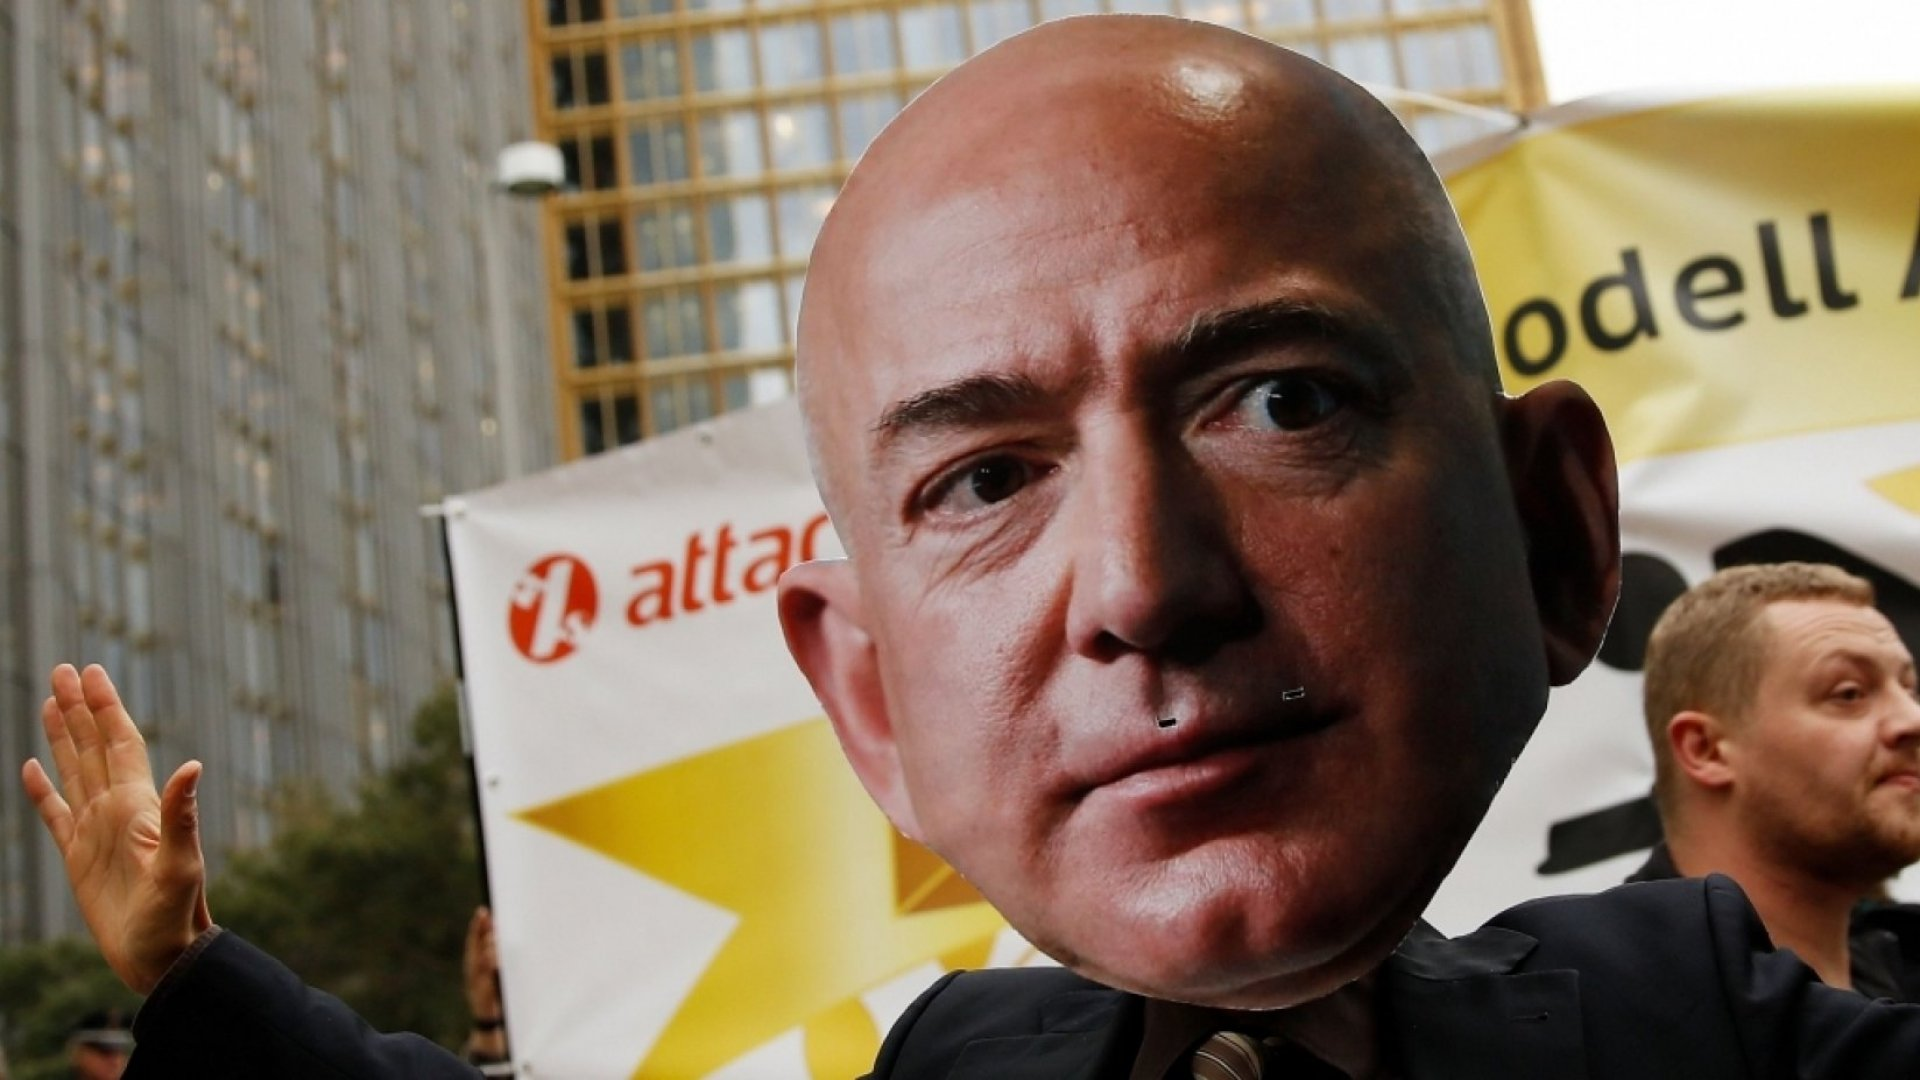 Why Does Everyone Seem to Hate Jeff Bezos?